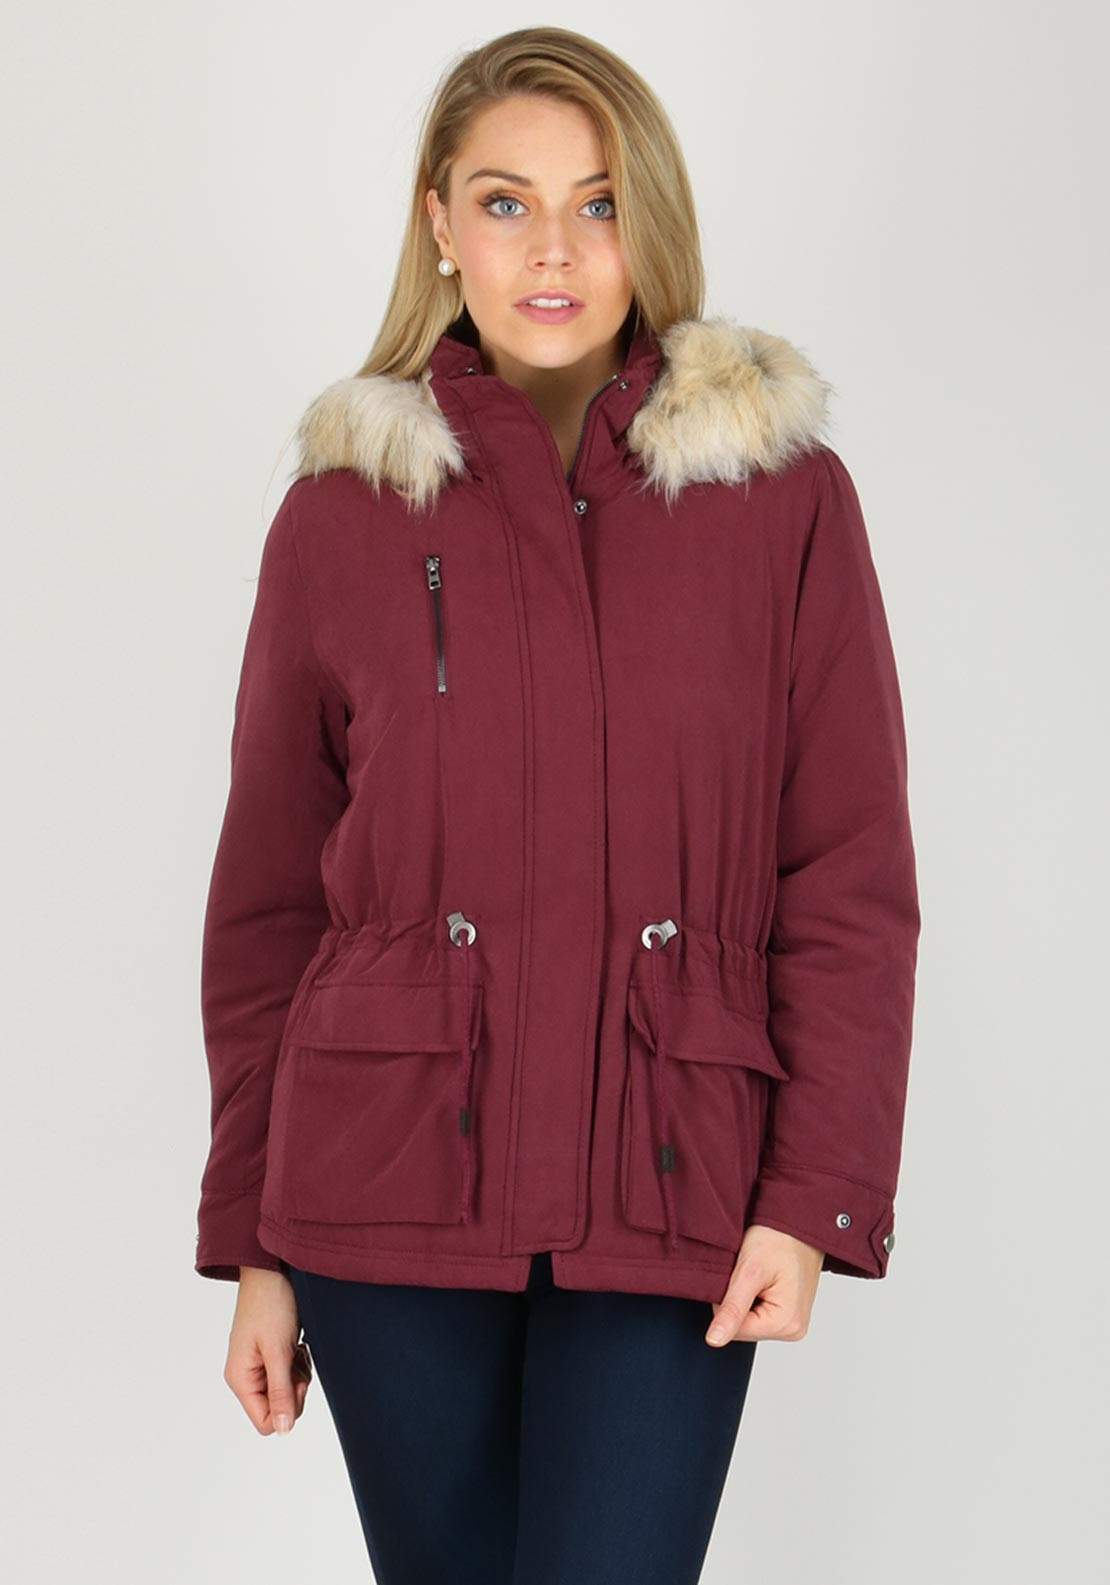 Vero Moda Starlight Short Parka Coat, Burgundy | McElhinneys ...